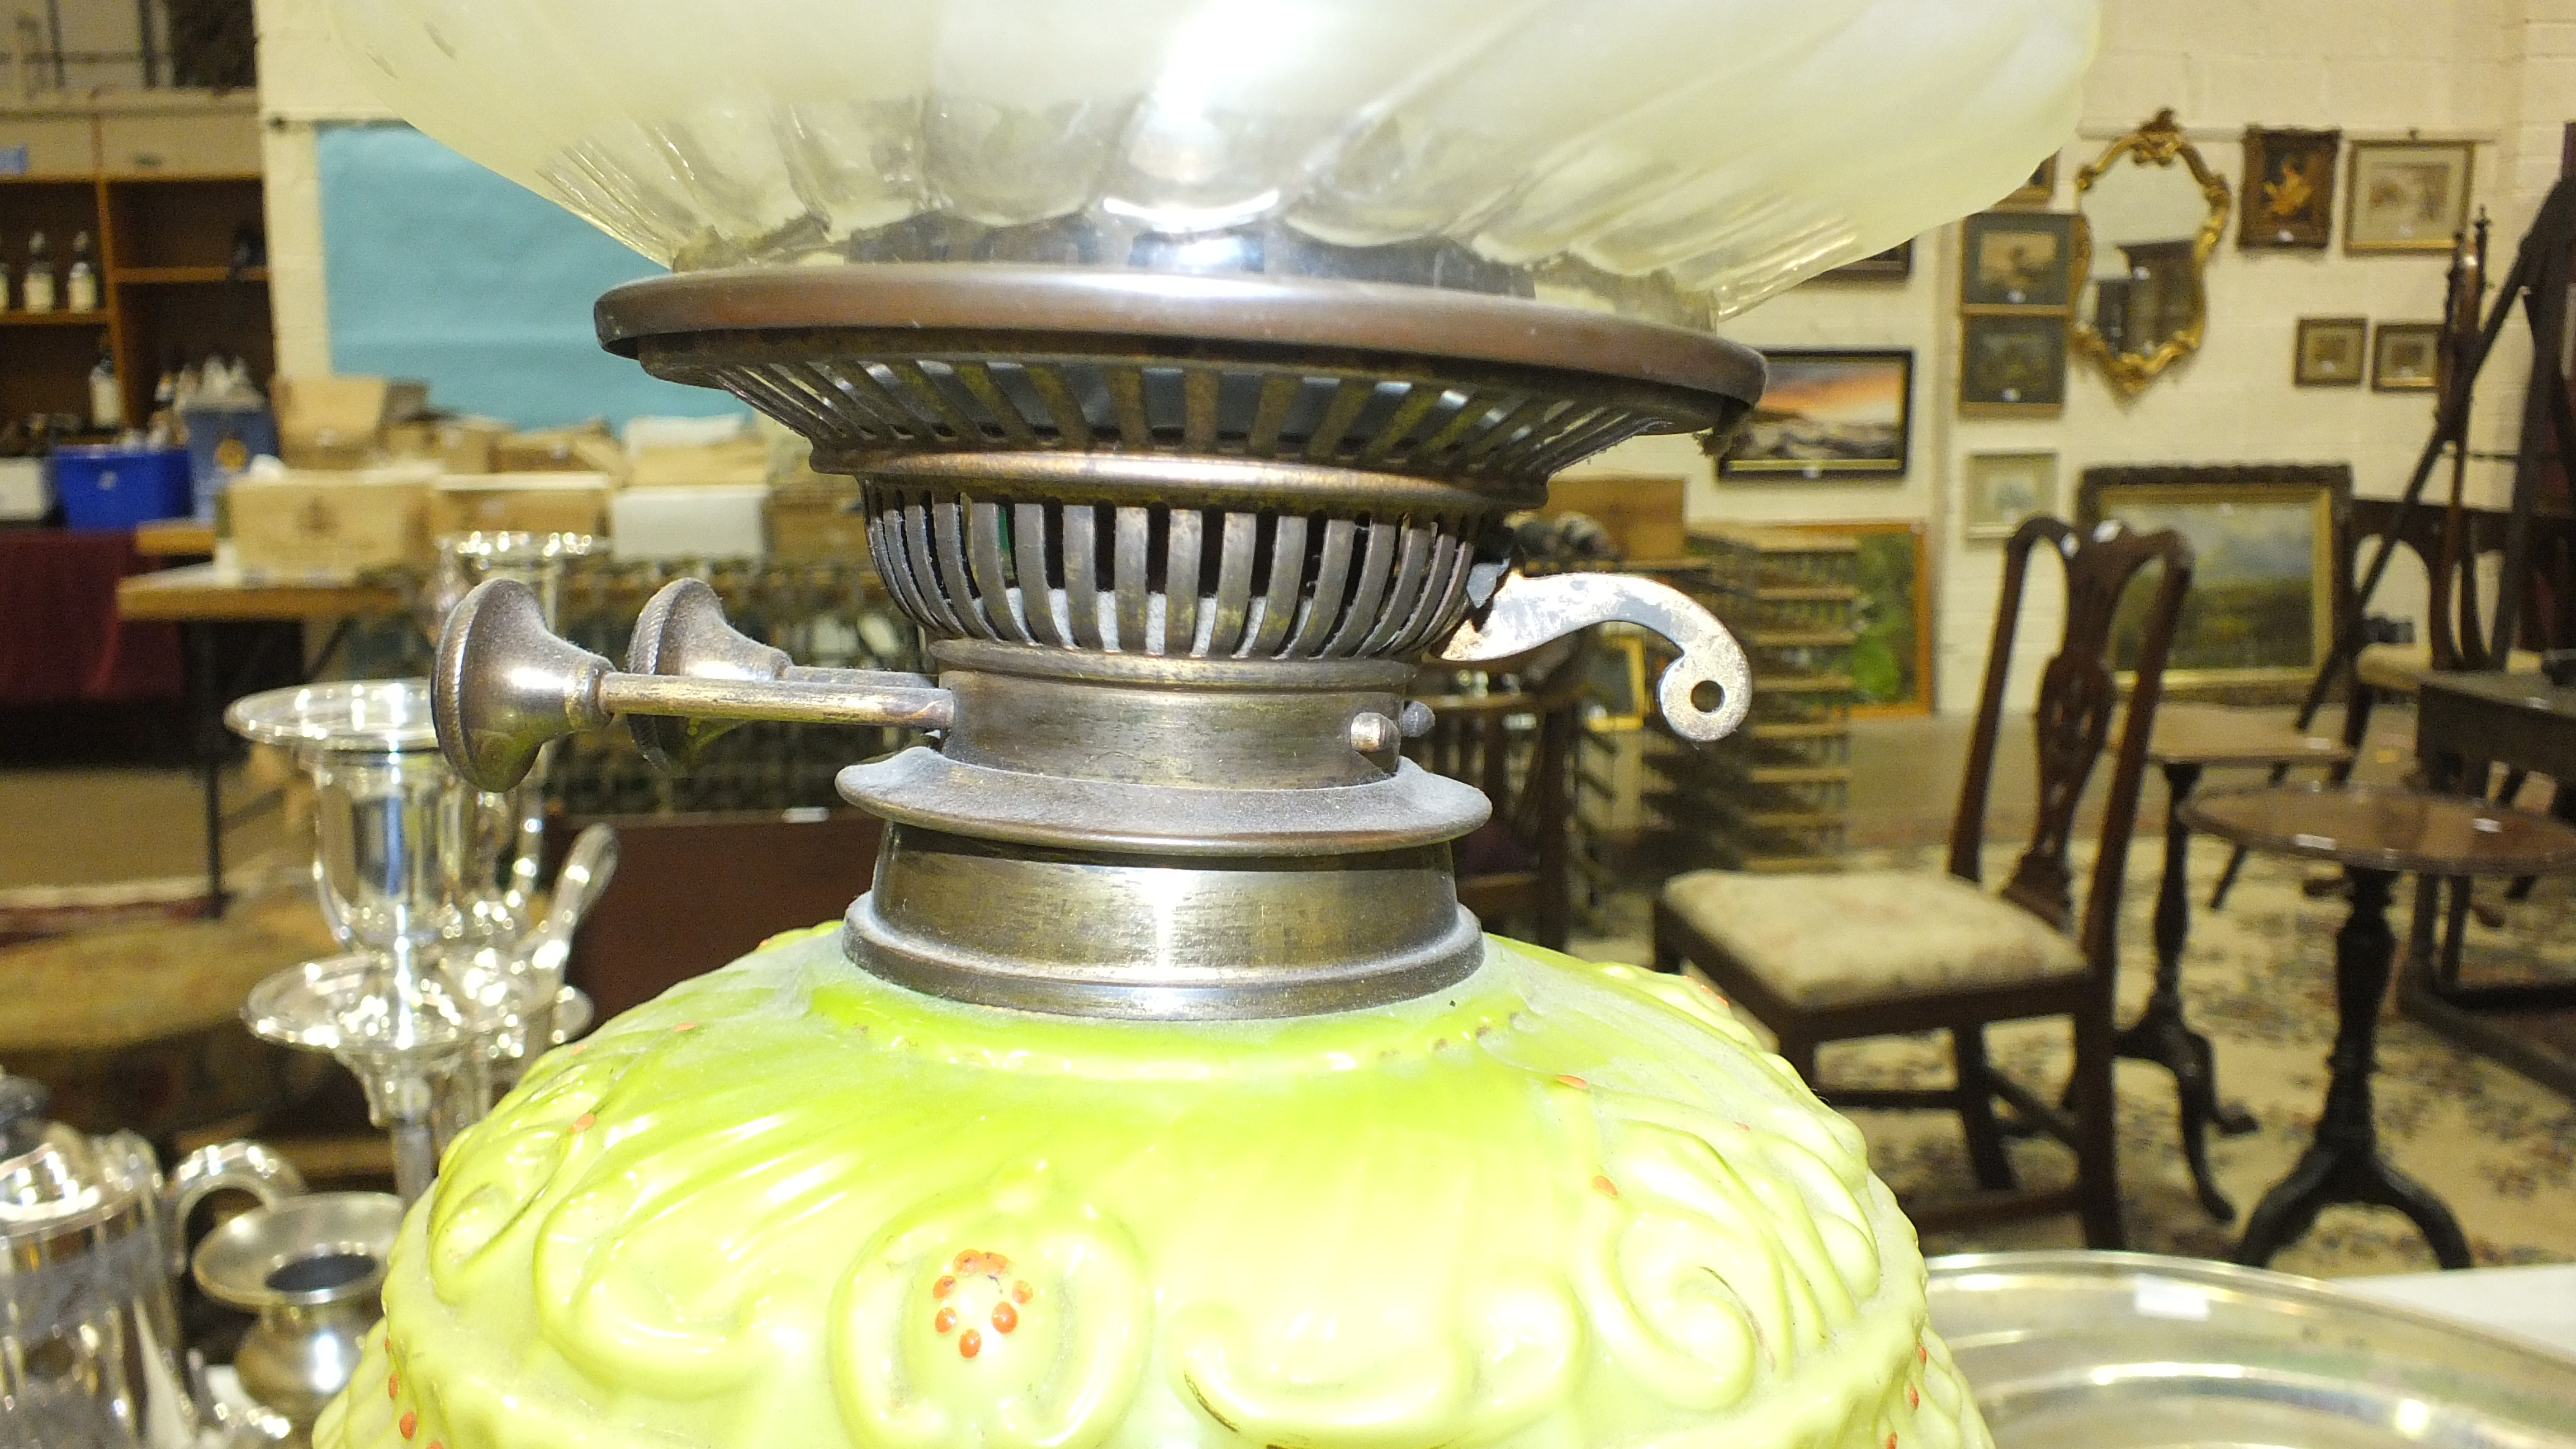 A Victorian brass and copper oil lamp with moulded pale green glass reservoir and etched glass - Image 8 of 14